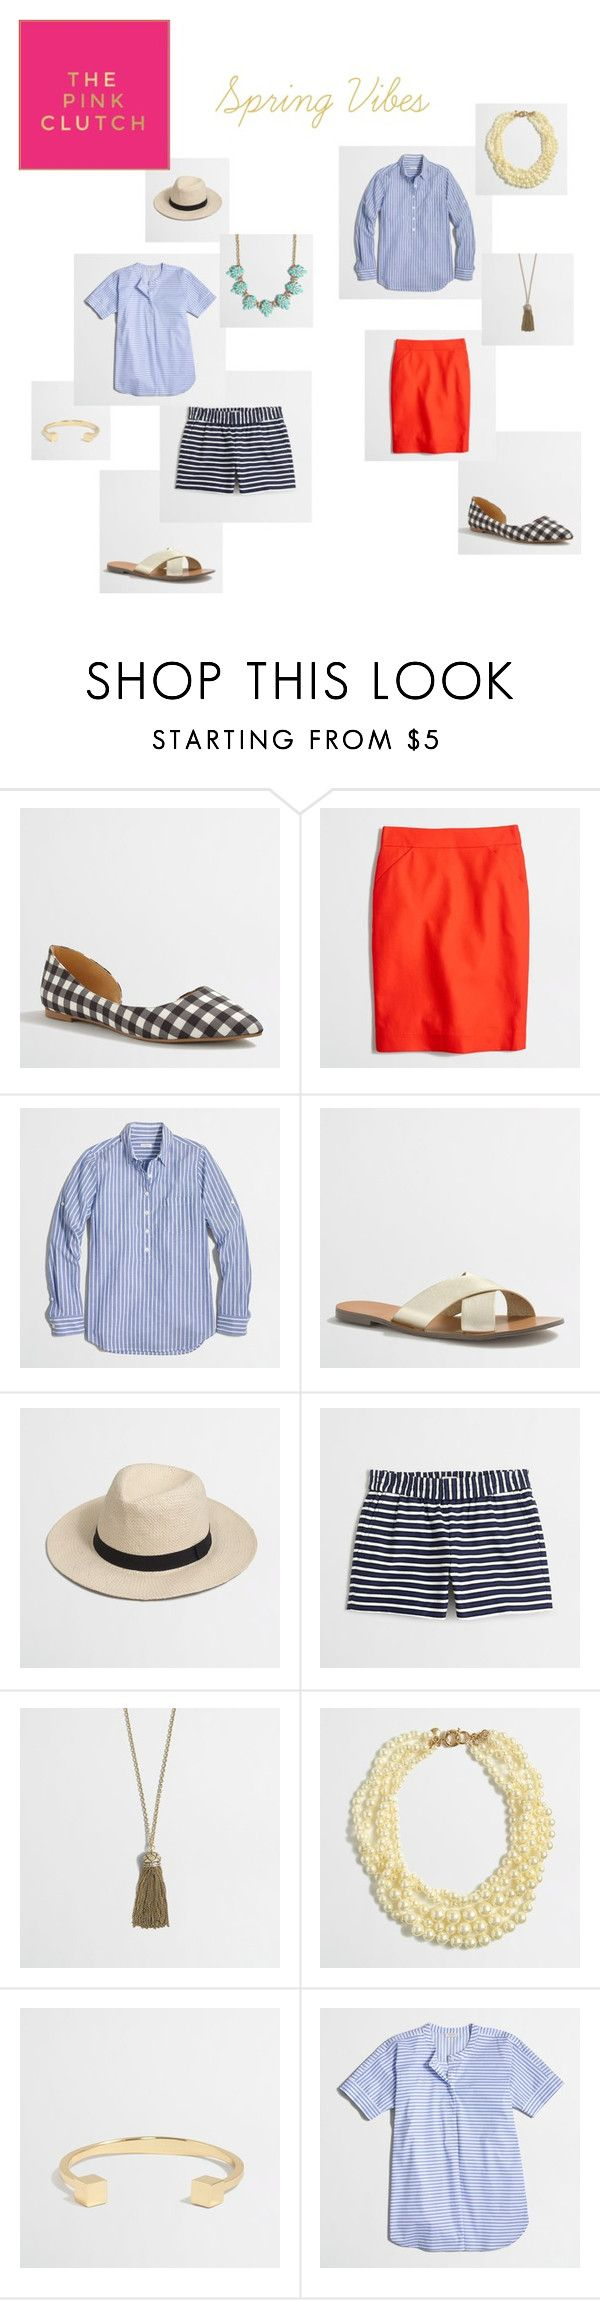 Spring Vibes with JCrew Factory by paige-schrank-minear on Polyvore featuring J.Crew, women's clothing, women's fashion, women, female, woman, misses and juniors